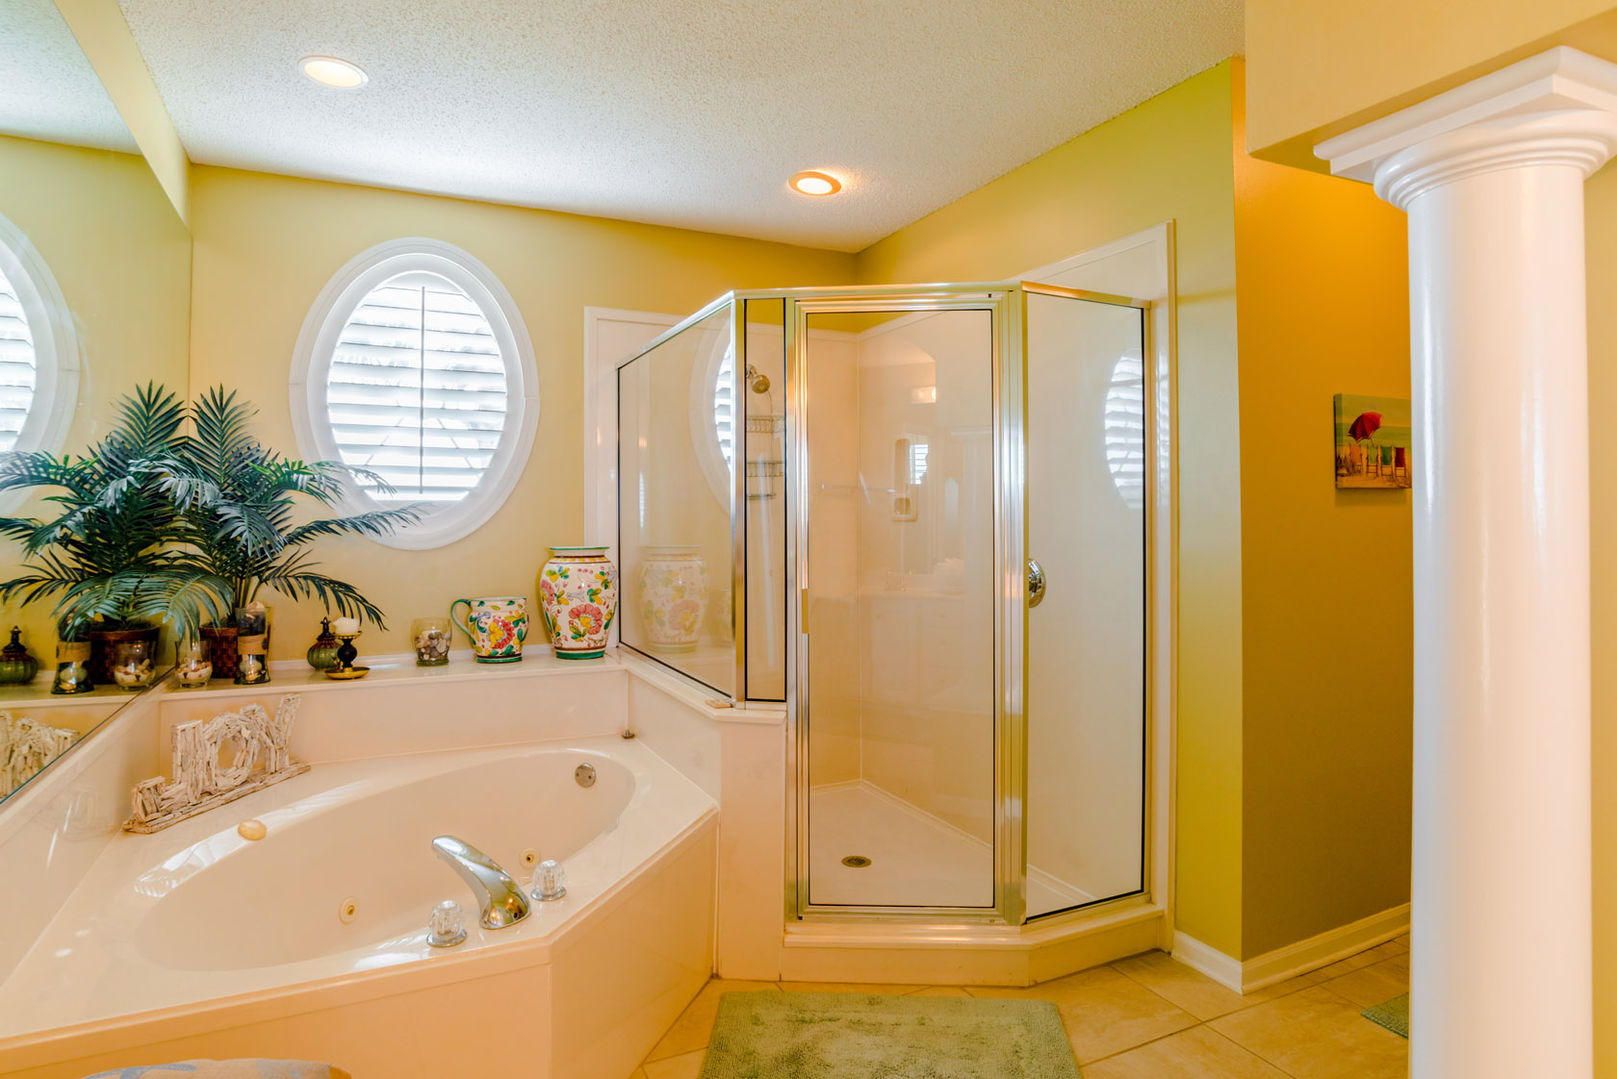 Garden Tub with adjacent Walk-In Shower